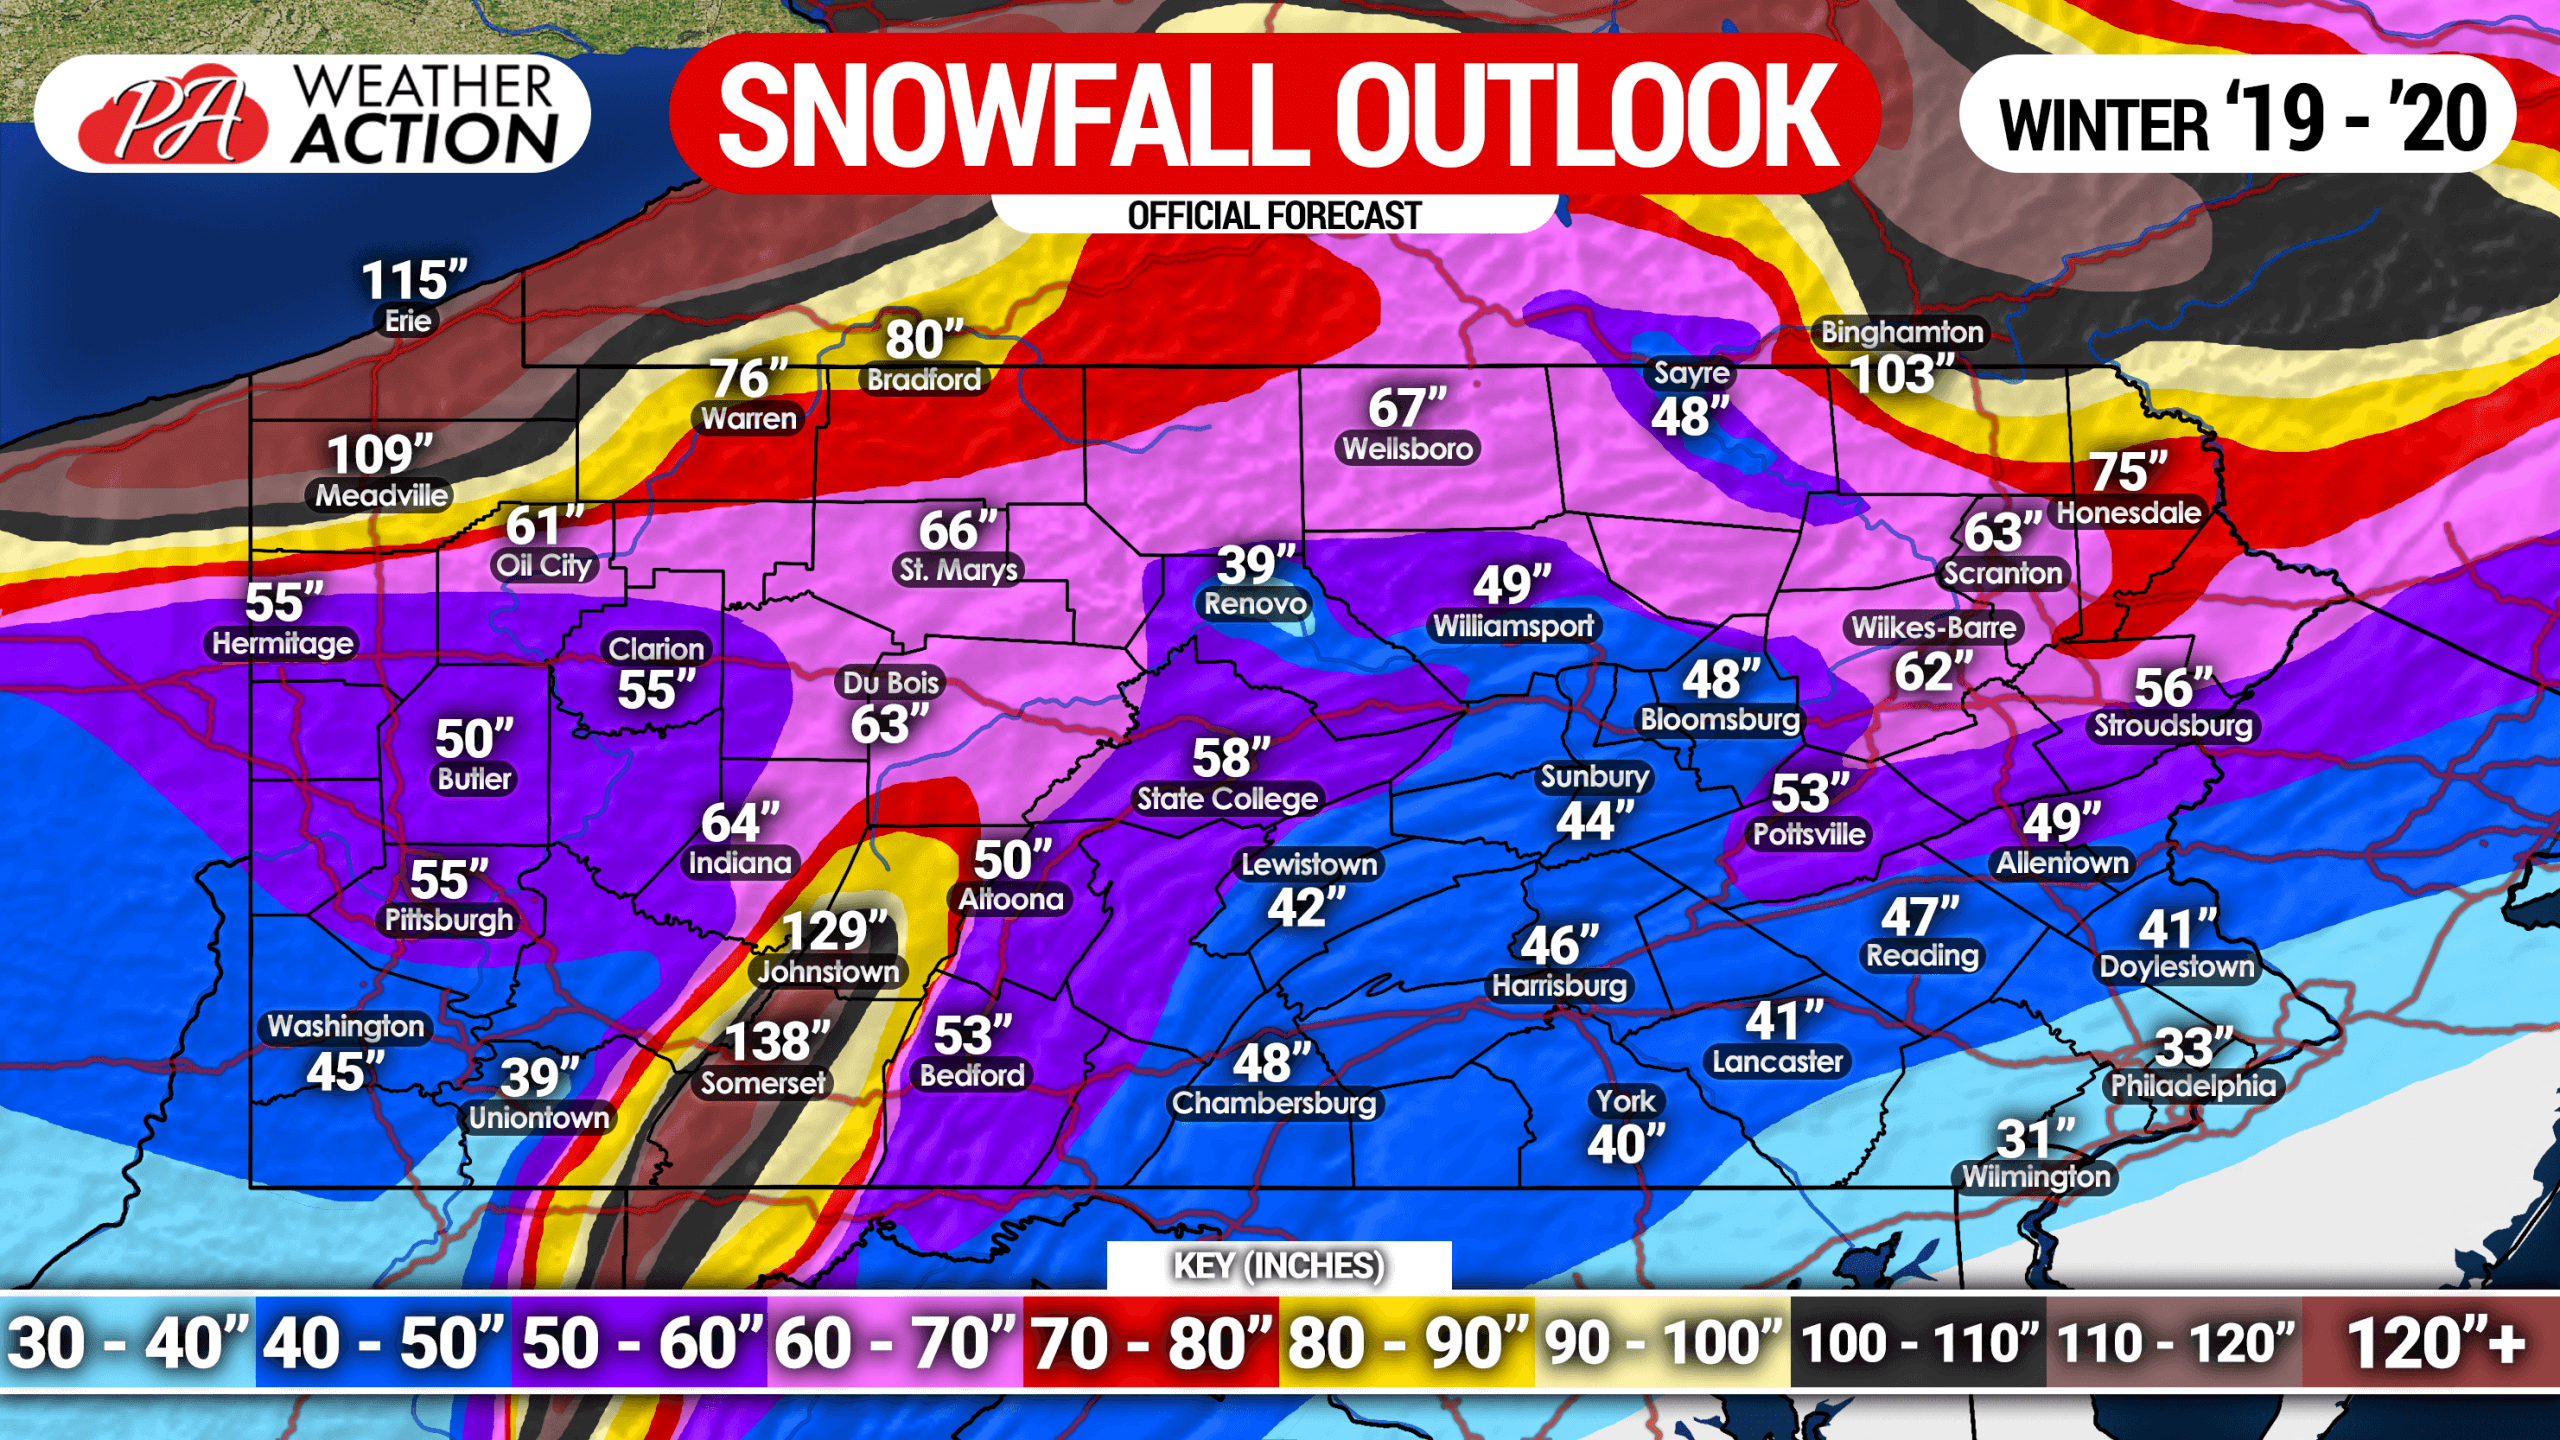 Official 2019 – 2020 Pennsylvania Winter Forecast – PA Weather Action